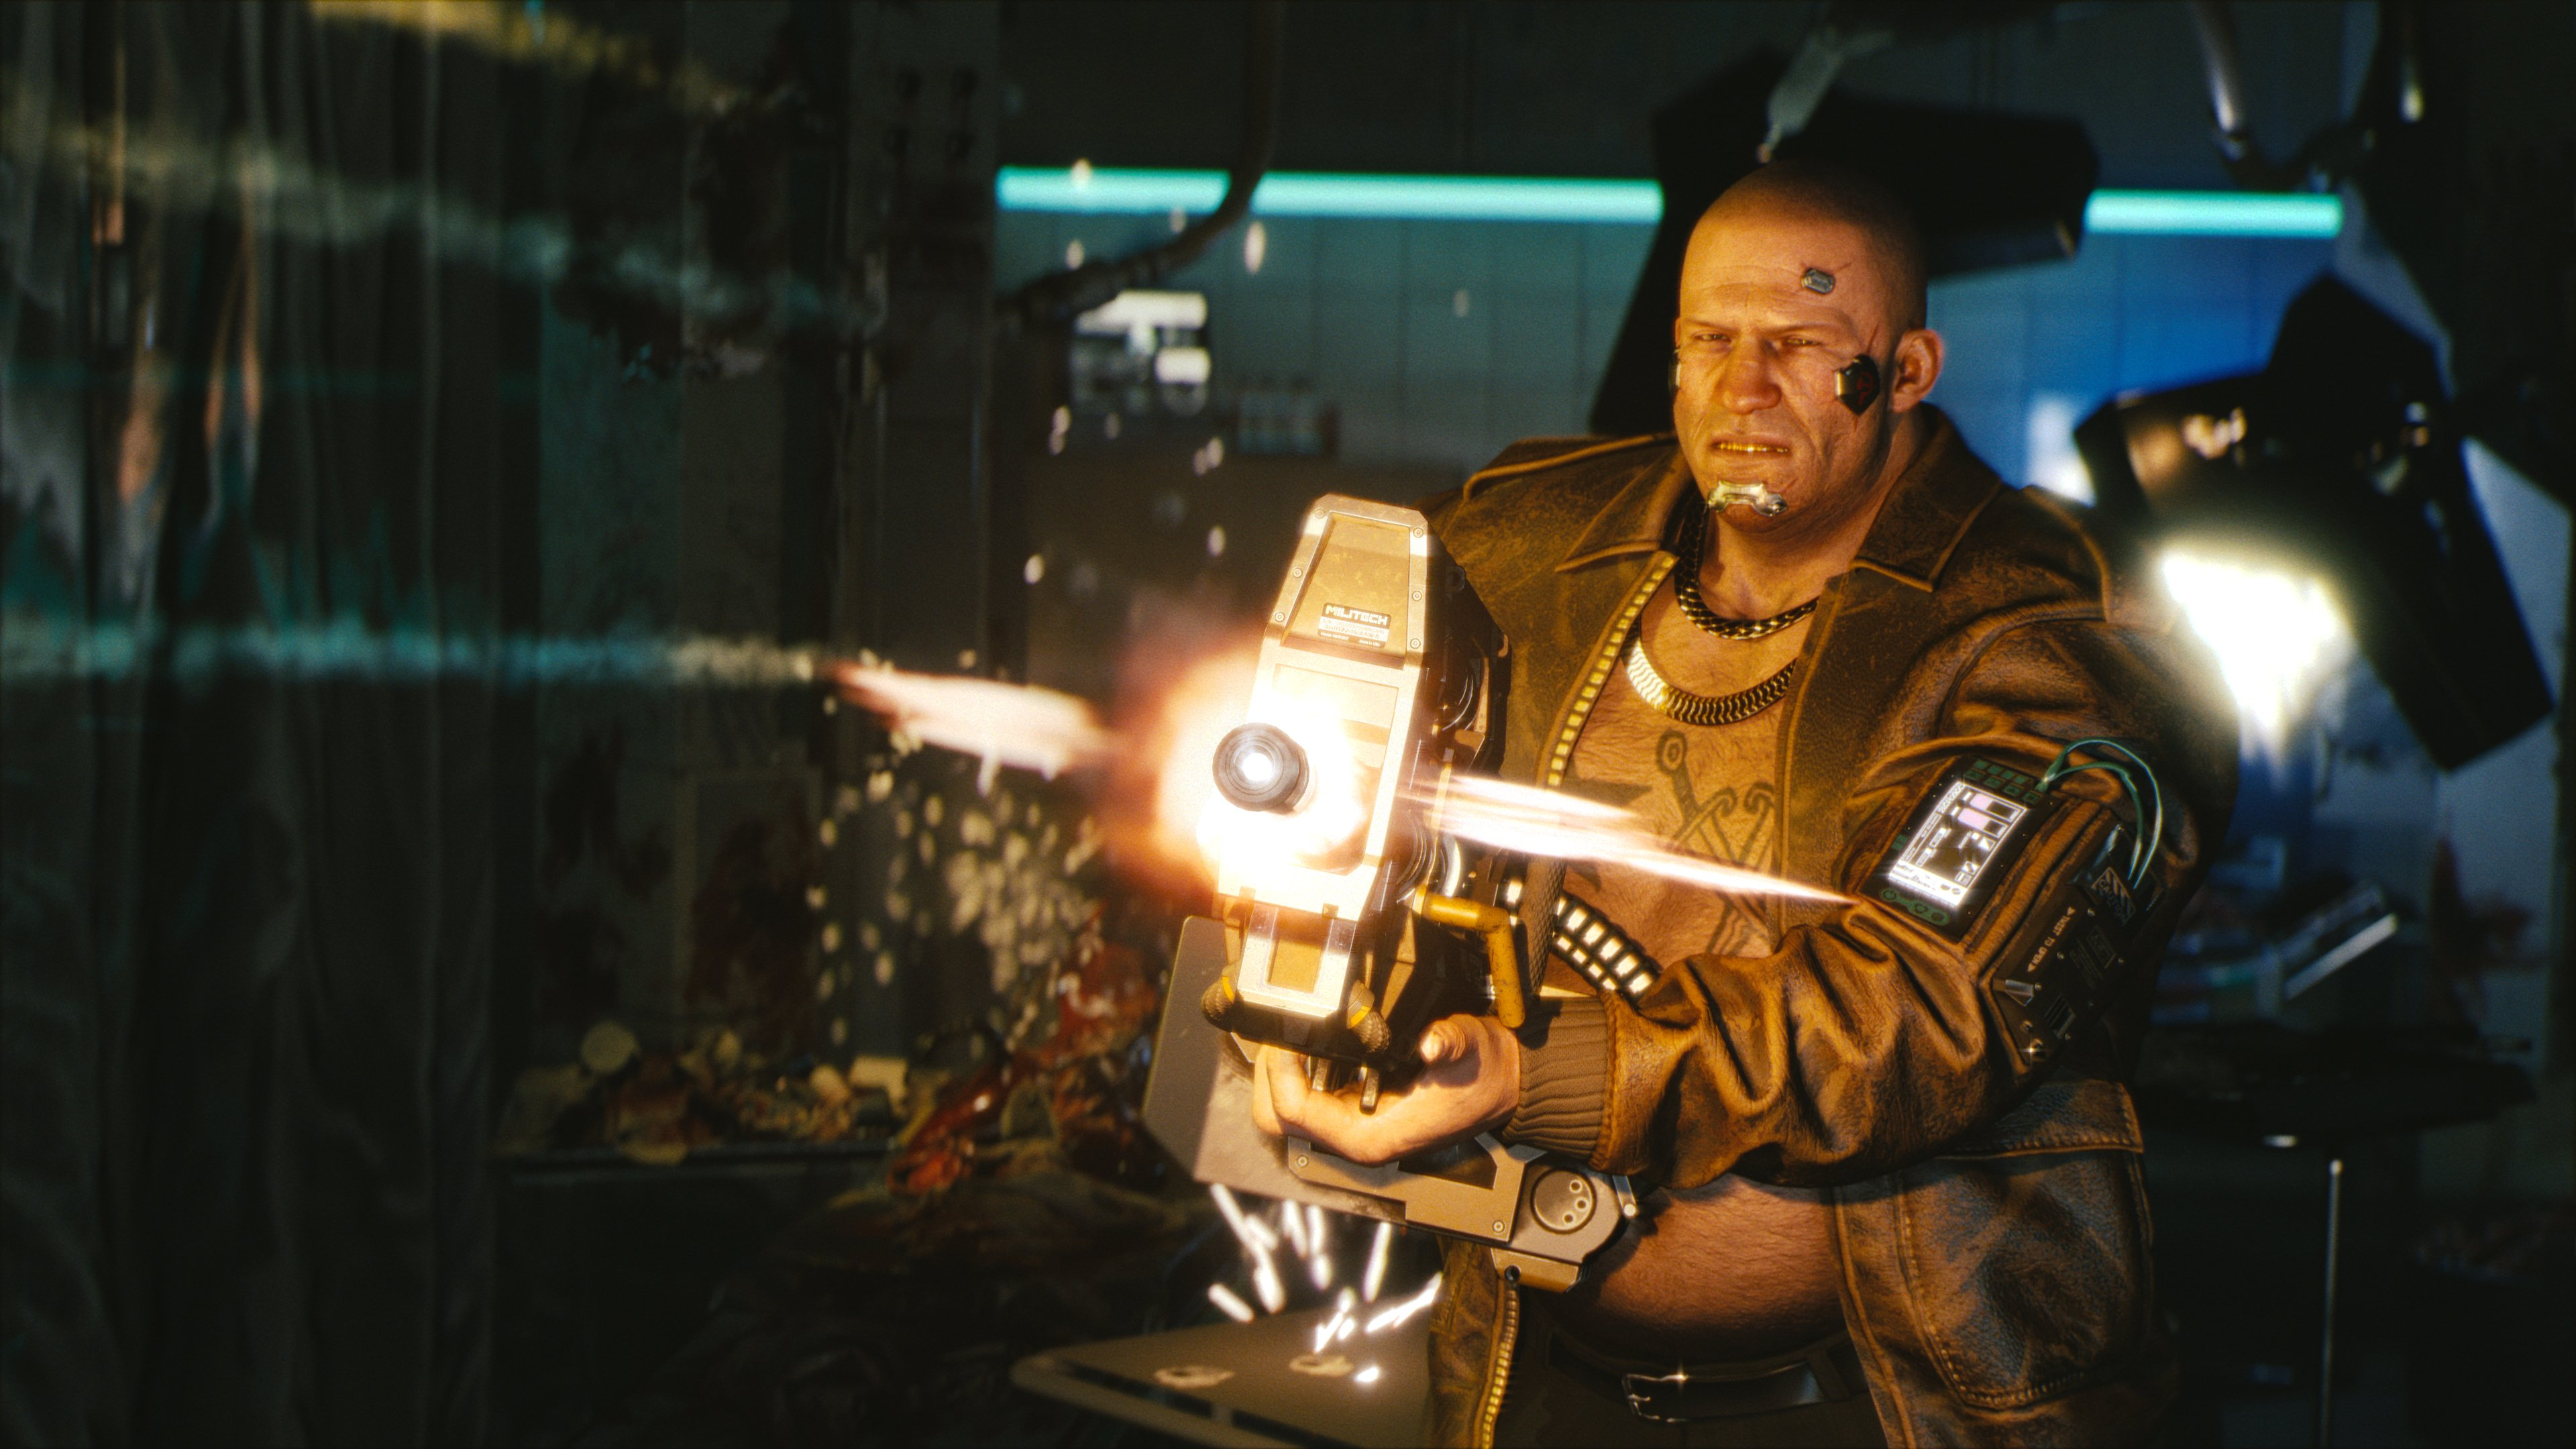 It's so nice that Cyberpunk 2077 just has one $60 digital edition